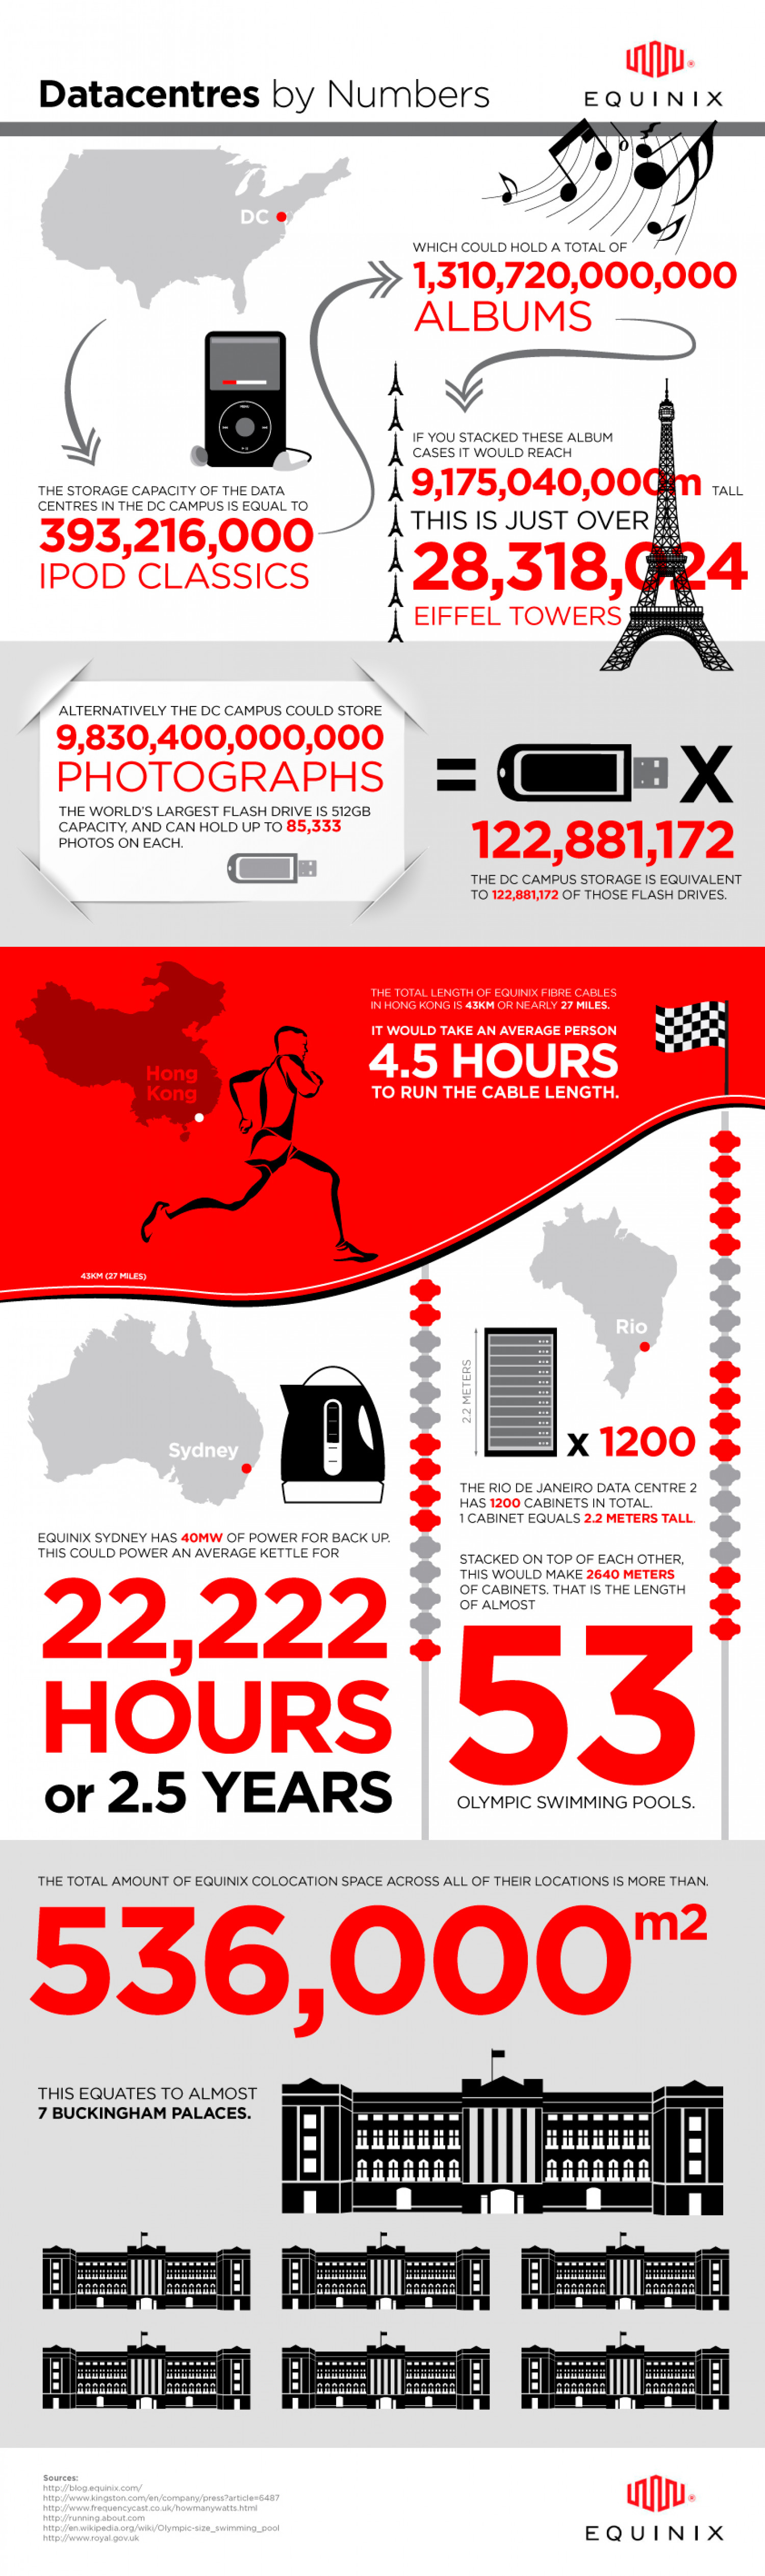 Datacentres by Numbers Infographic